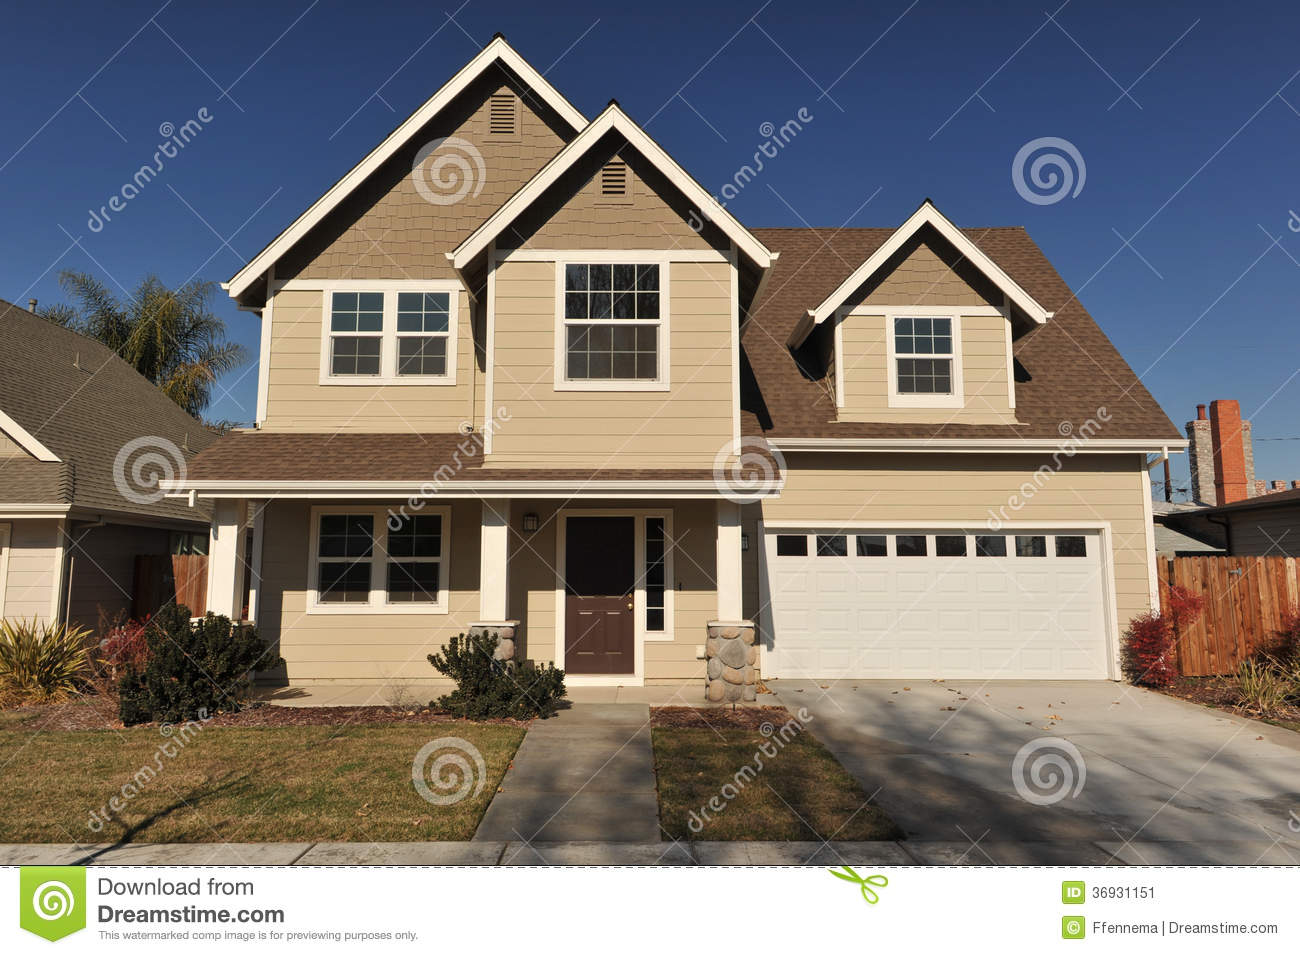 Great House With Two Stories And Trees On Side Stock Image